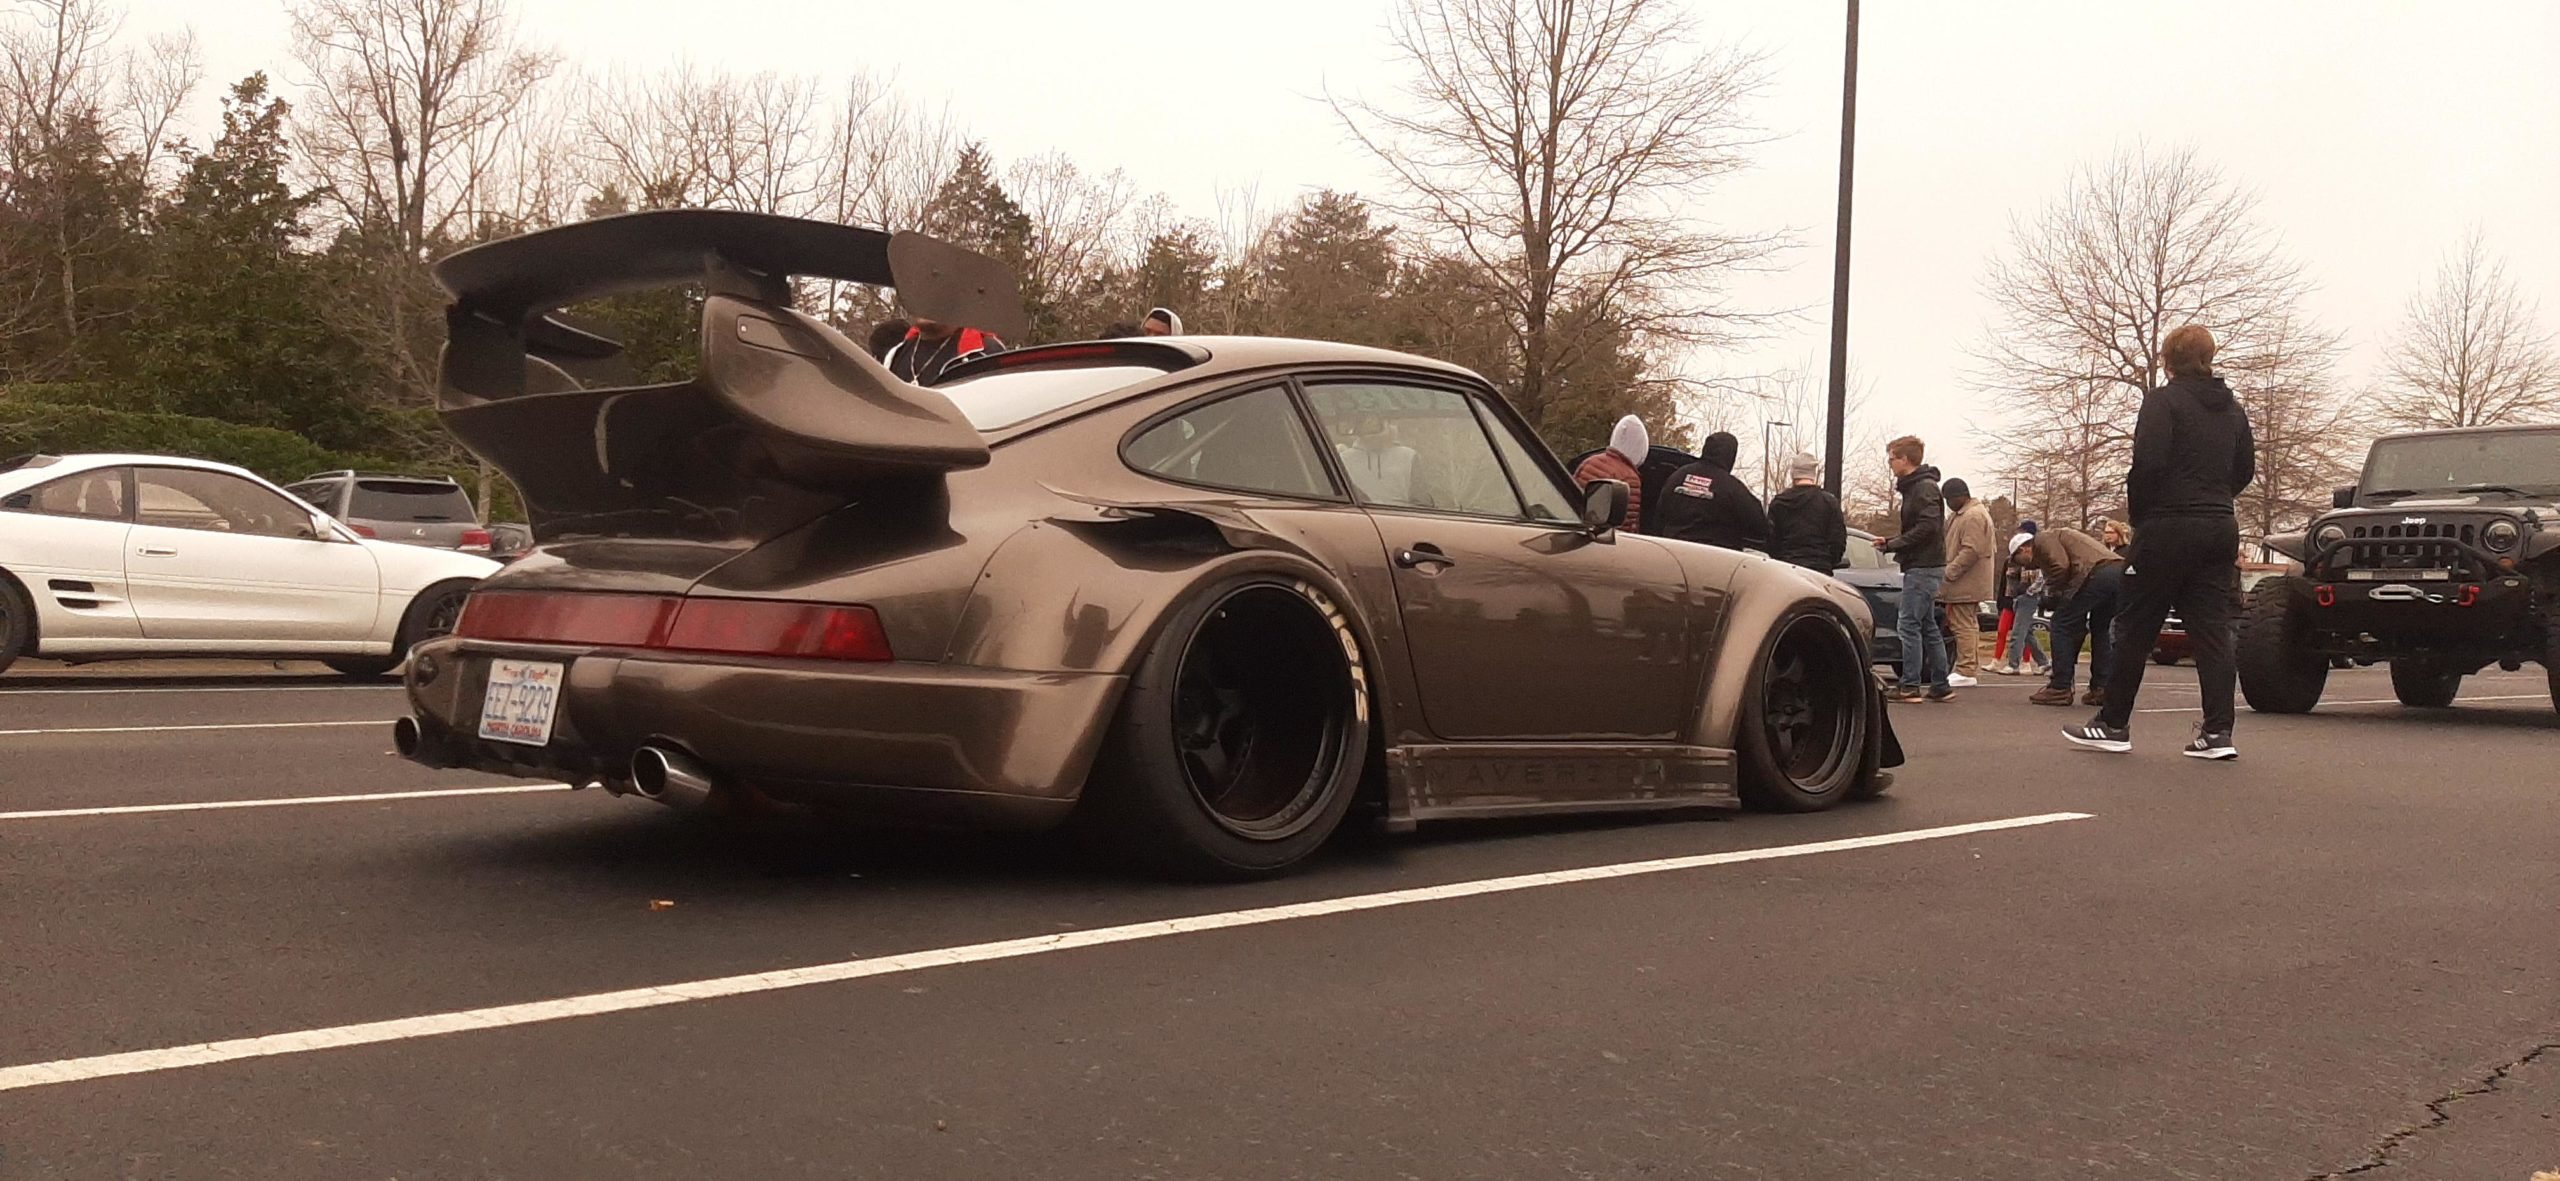 This beautiful RWB Porsche 911 at our Cars and Coffee this morning